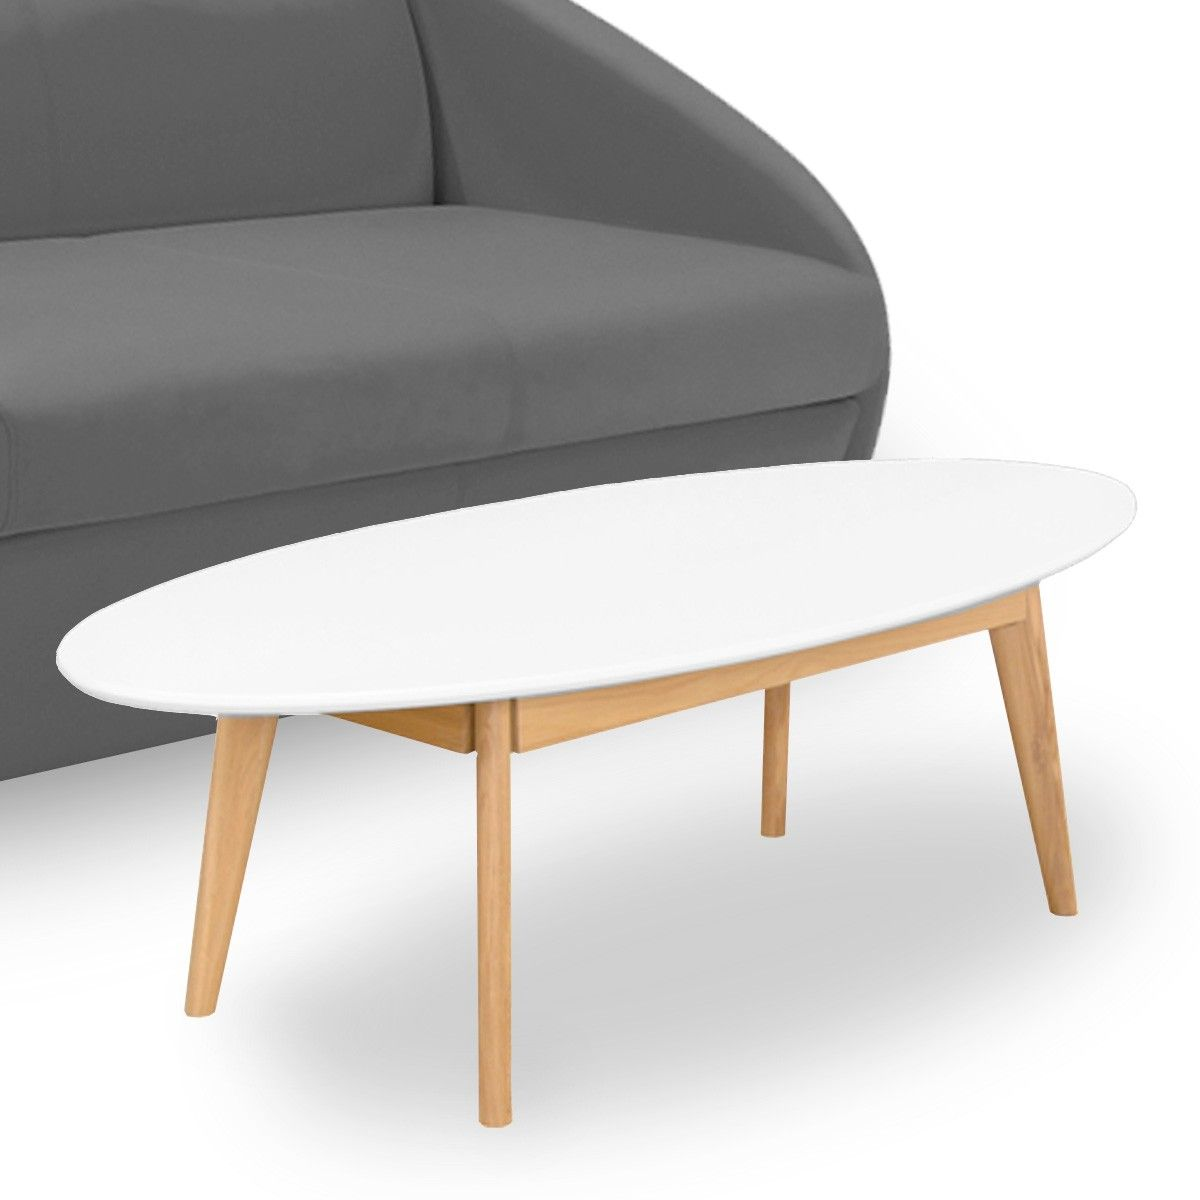 La table basse parfaite pour votre salon rise and shine - Table basse design scandinave ...